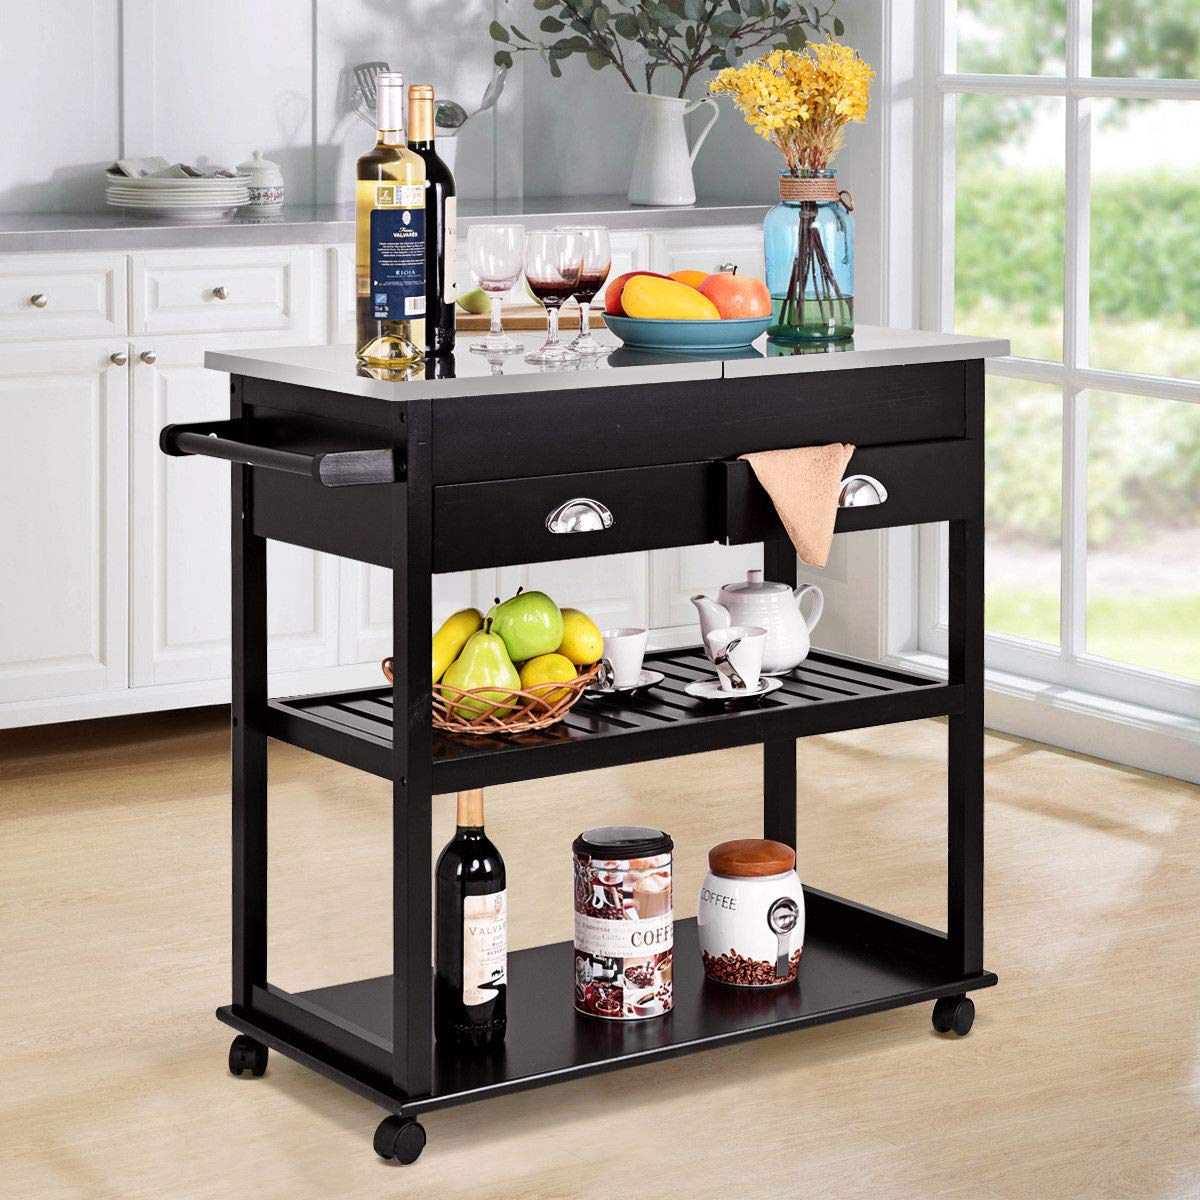 Amazon.com - Alek...Shop Modern Kitchen Trolley Cart ...